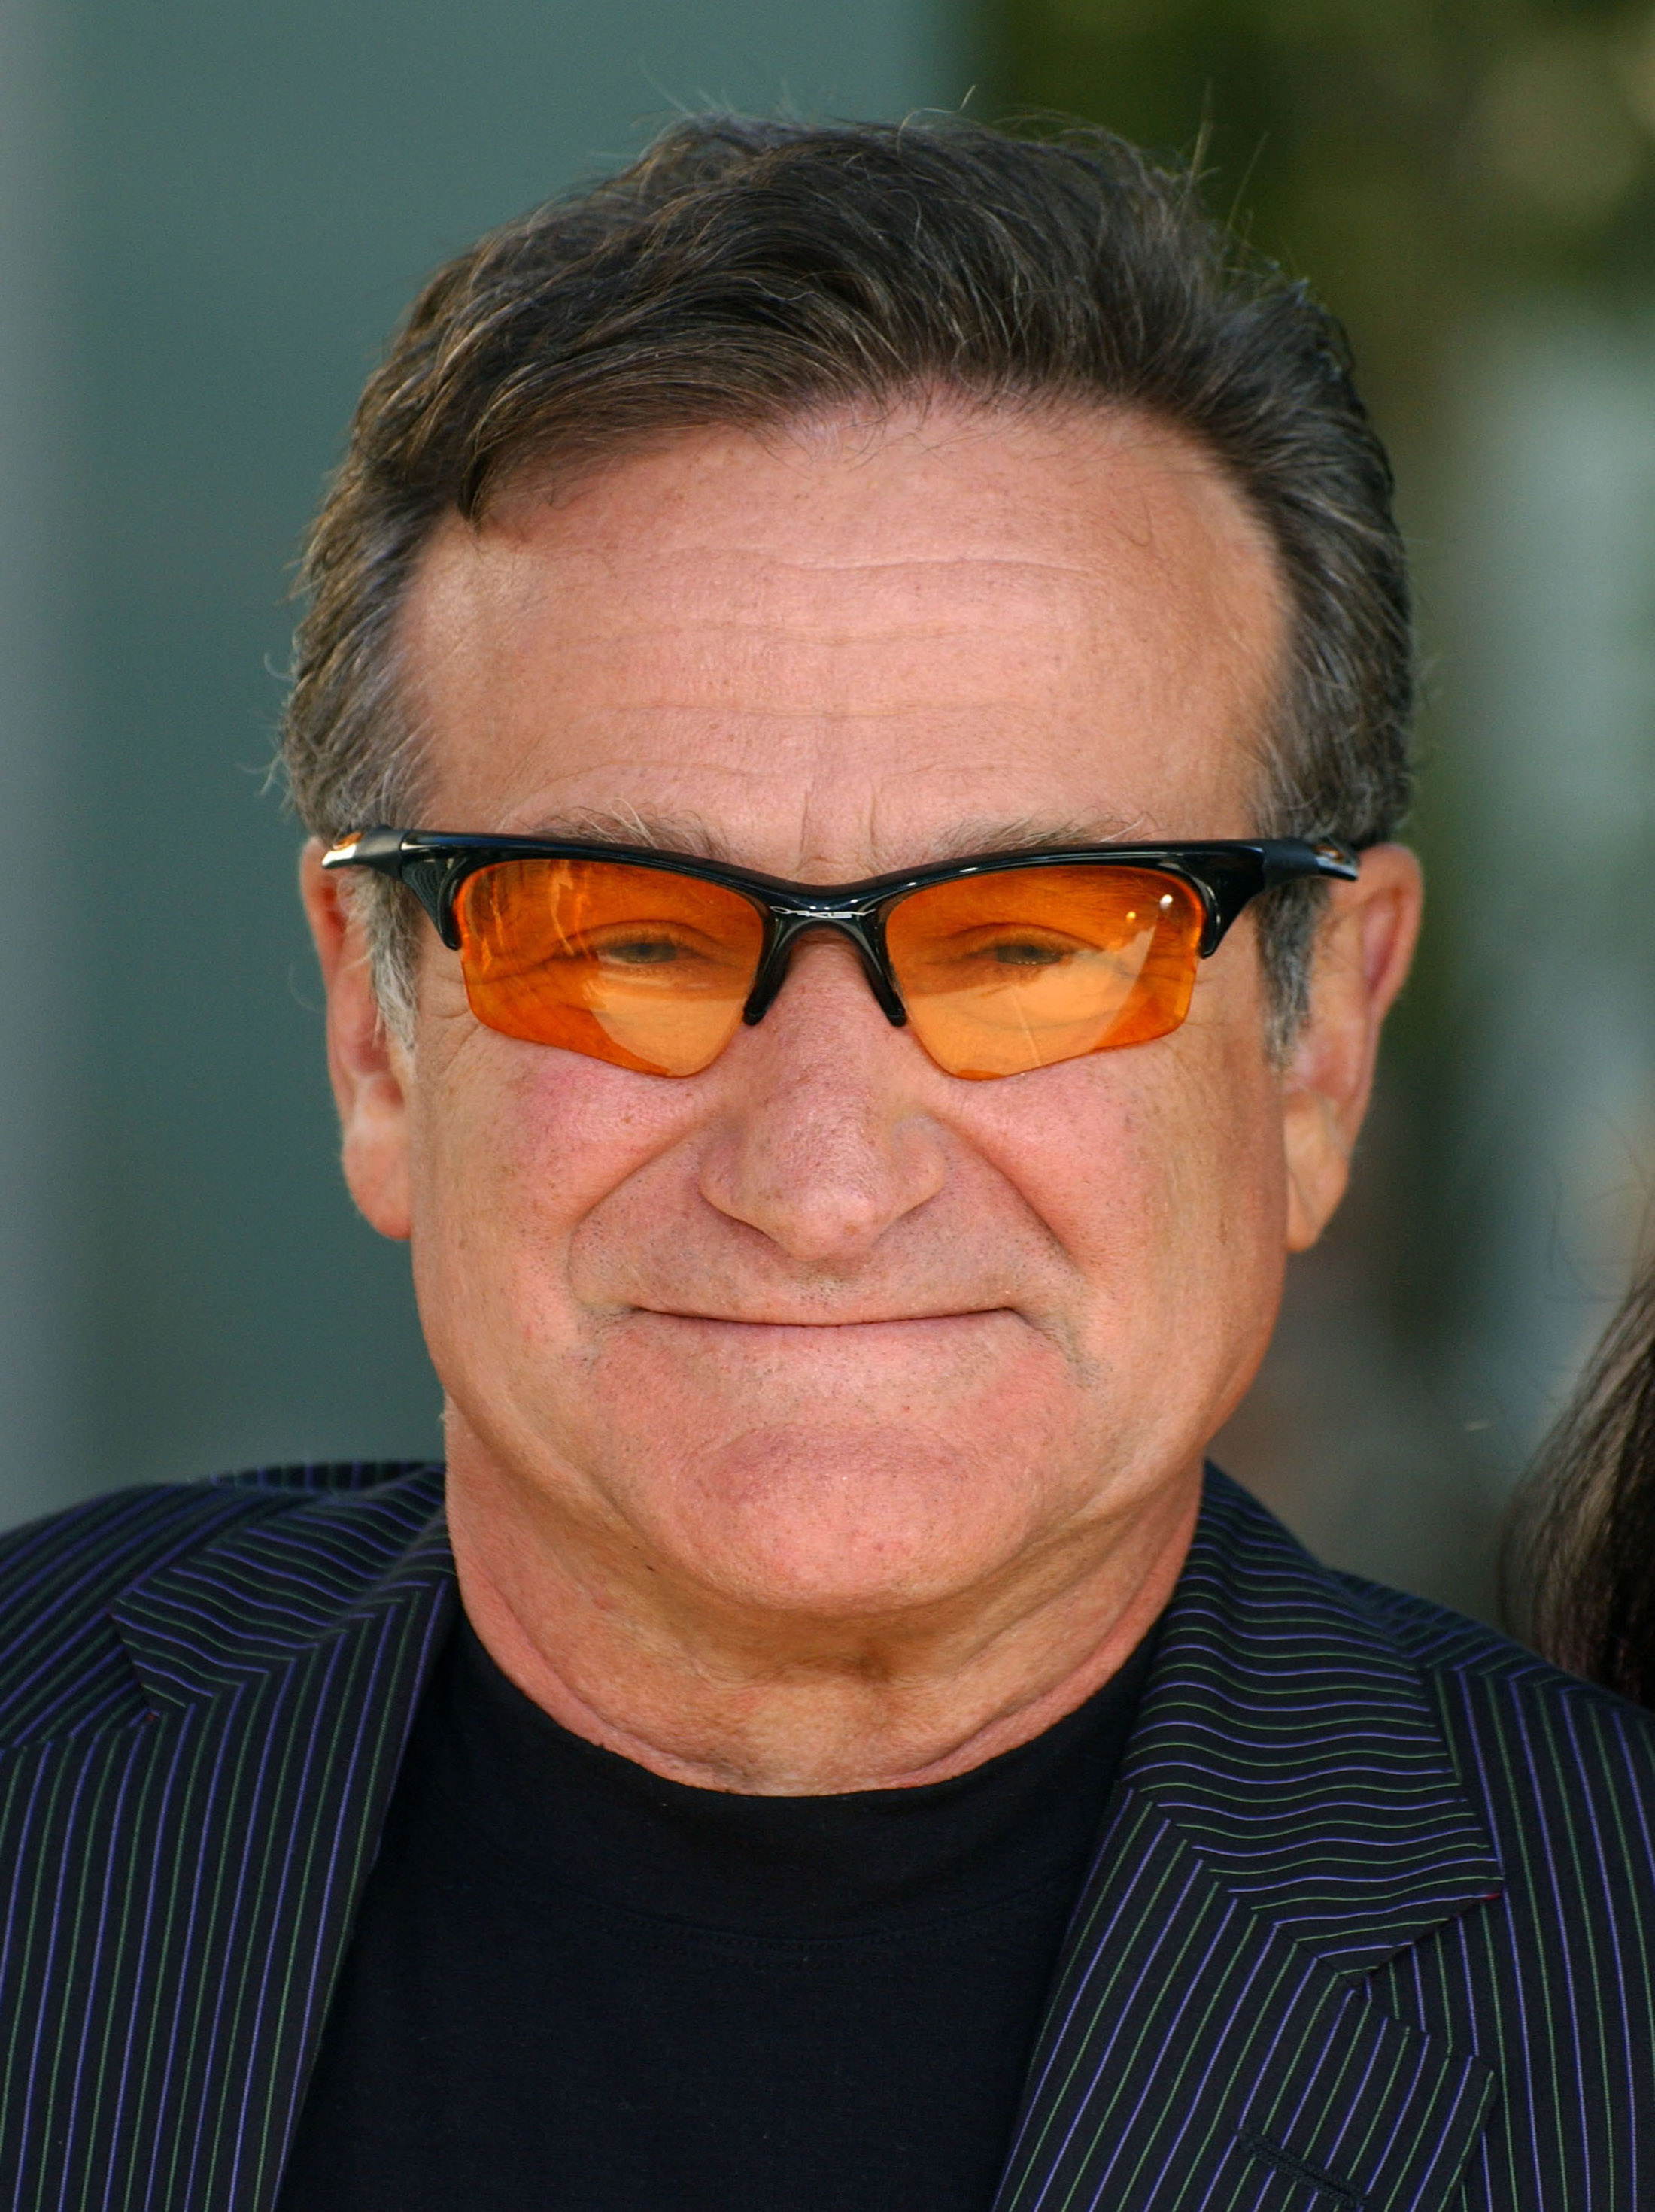 robin williams was losing his mind and was aware of it widow and shockingly the widow says she didn t even know robin had lbd until an autopsy revealed the condition three months after his death in 2014